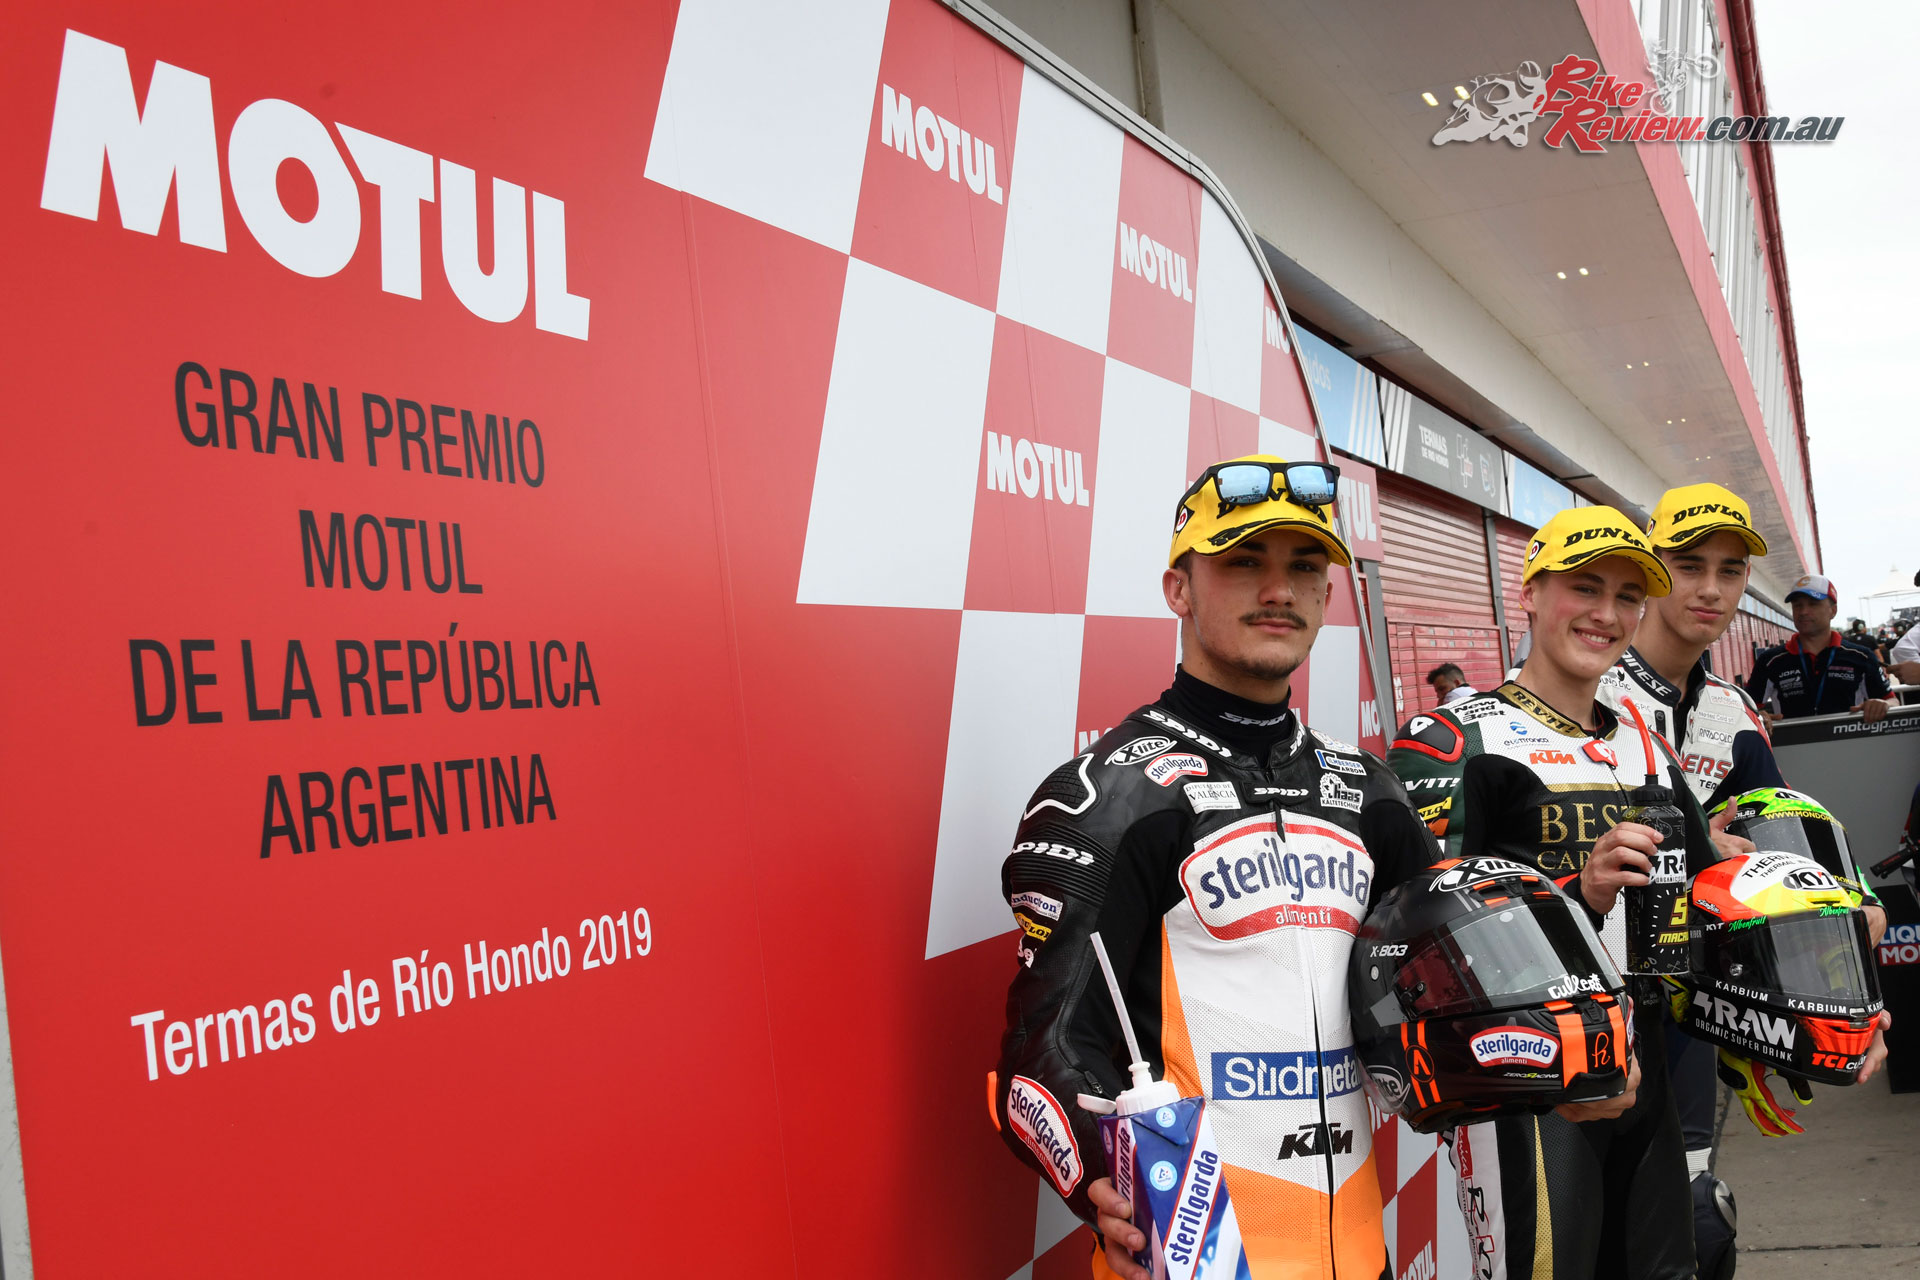 Moto3 Top 3 Qualifiers in Argentina 2019 -